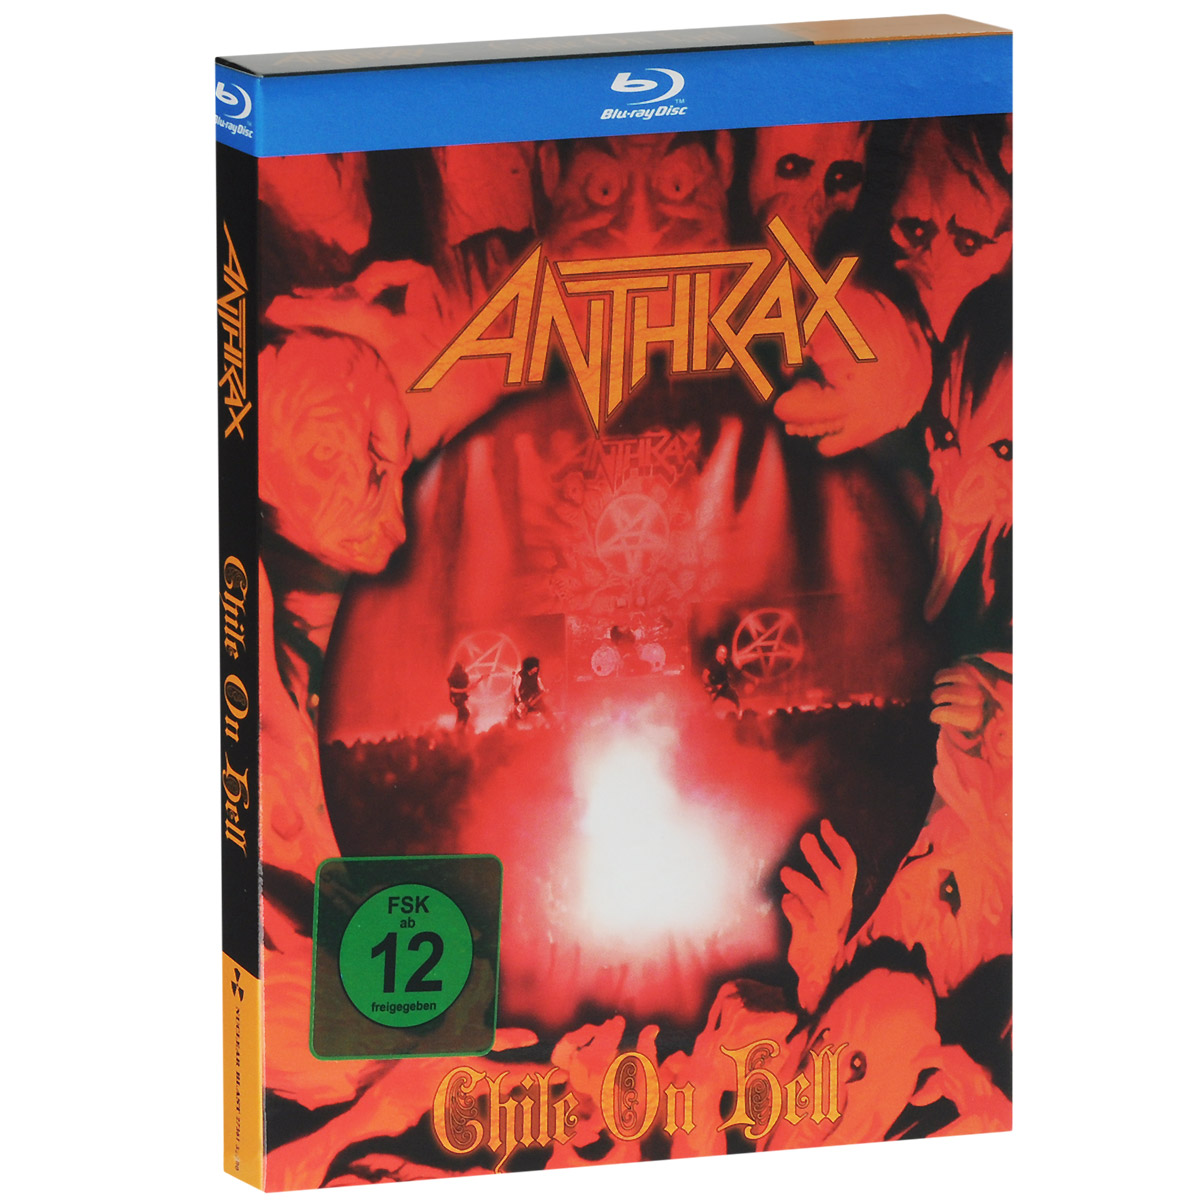 Anthrax. Chile on hell (Blu-ray + 2 CD) anthrax chile on hell blu ray